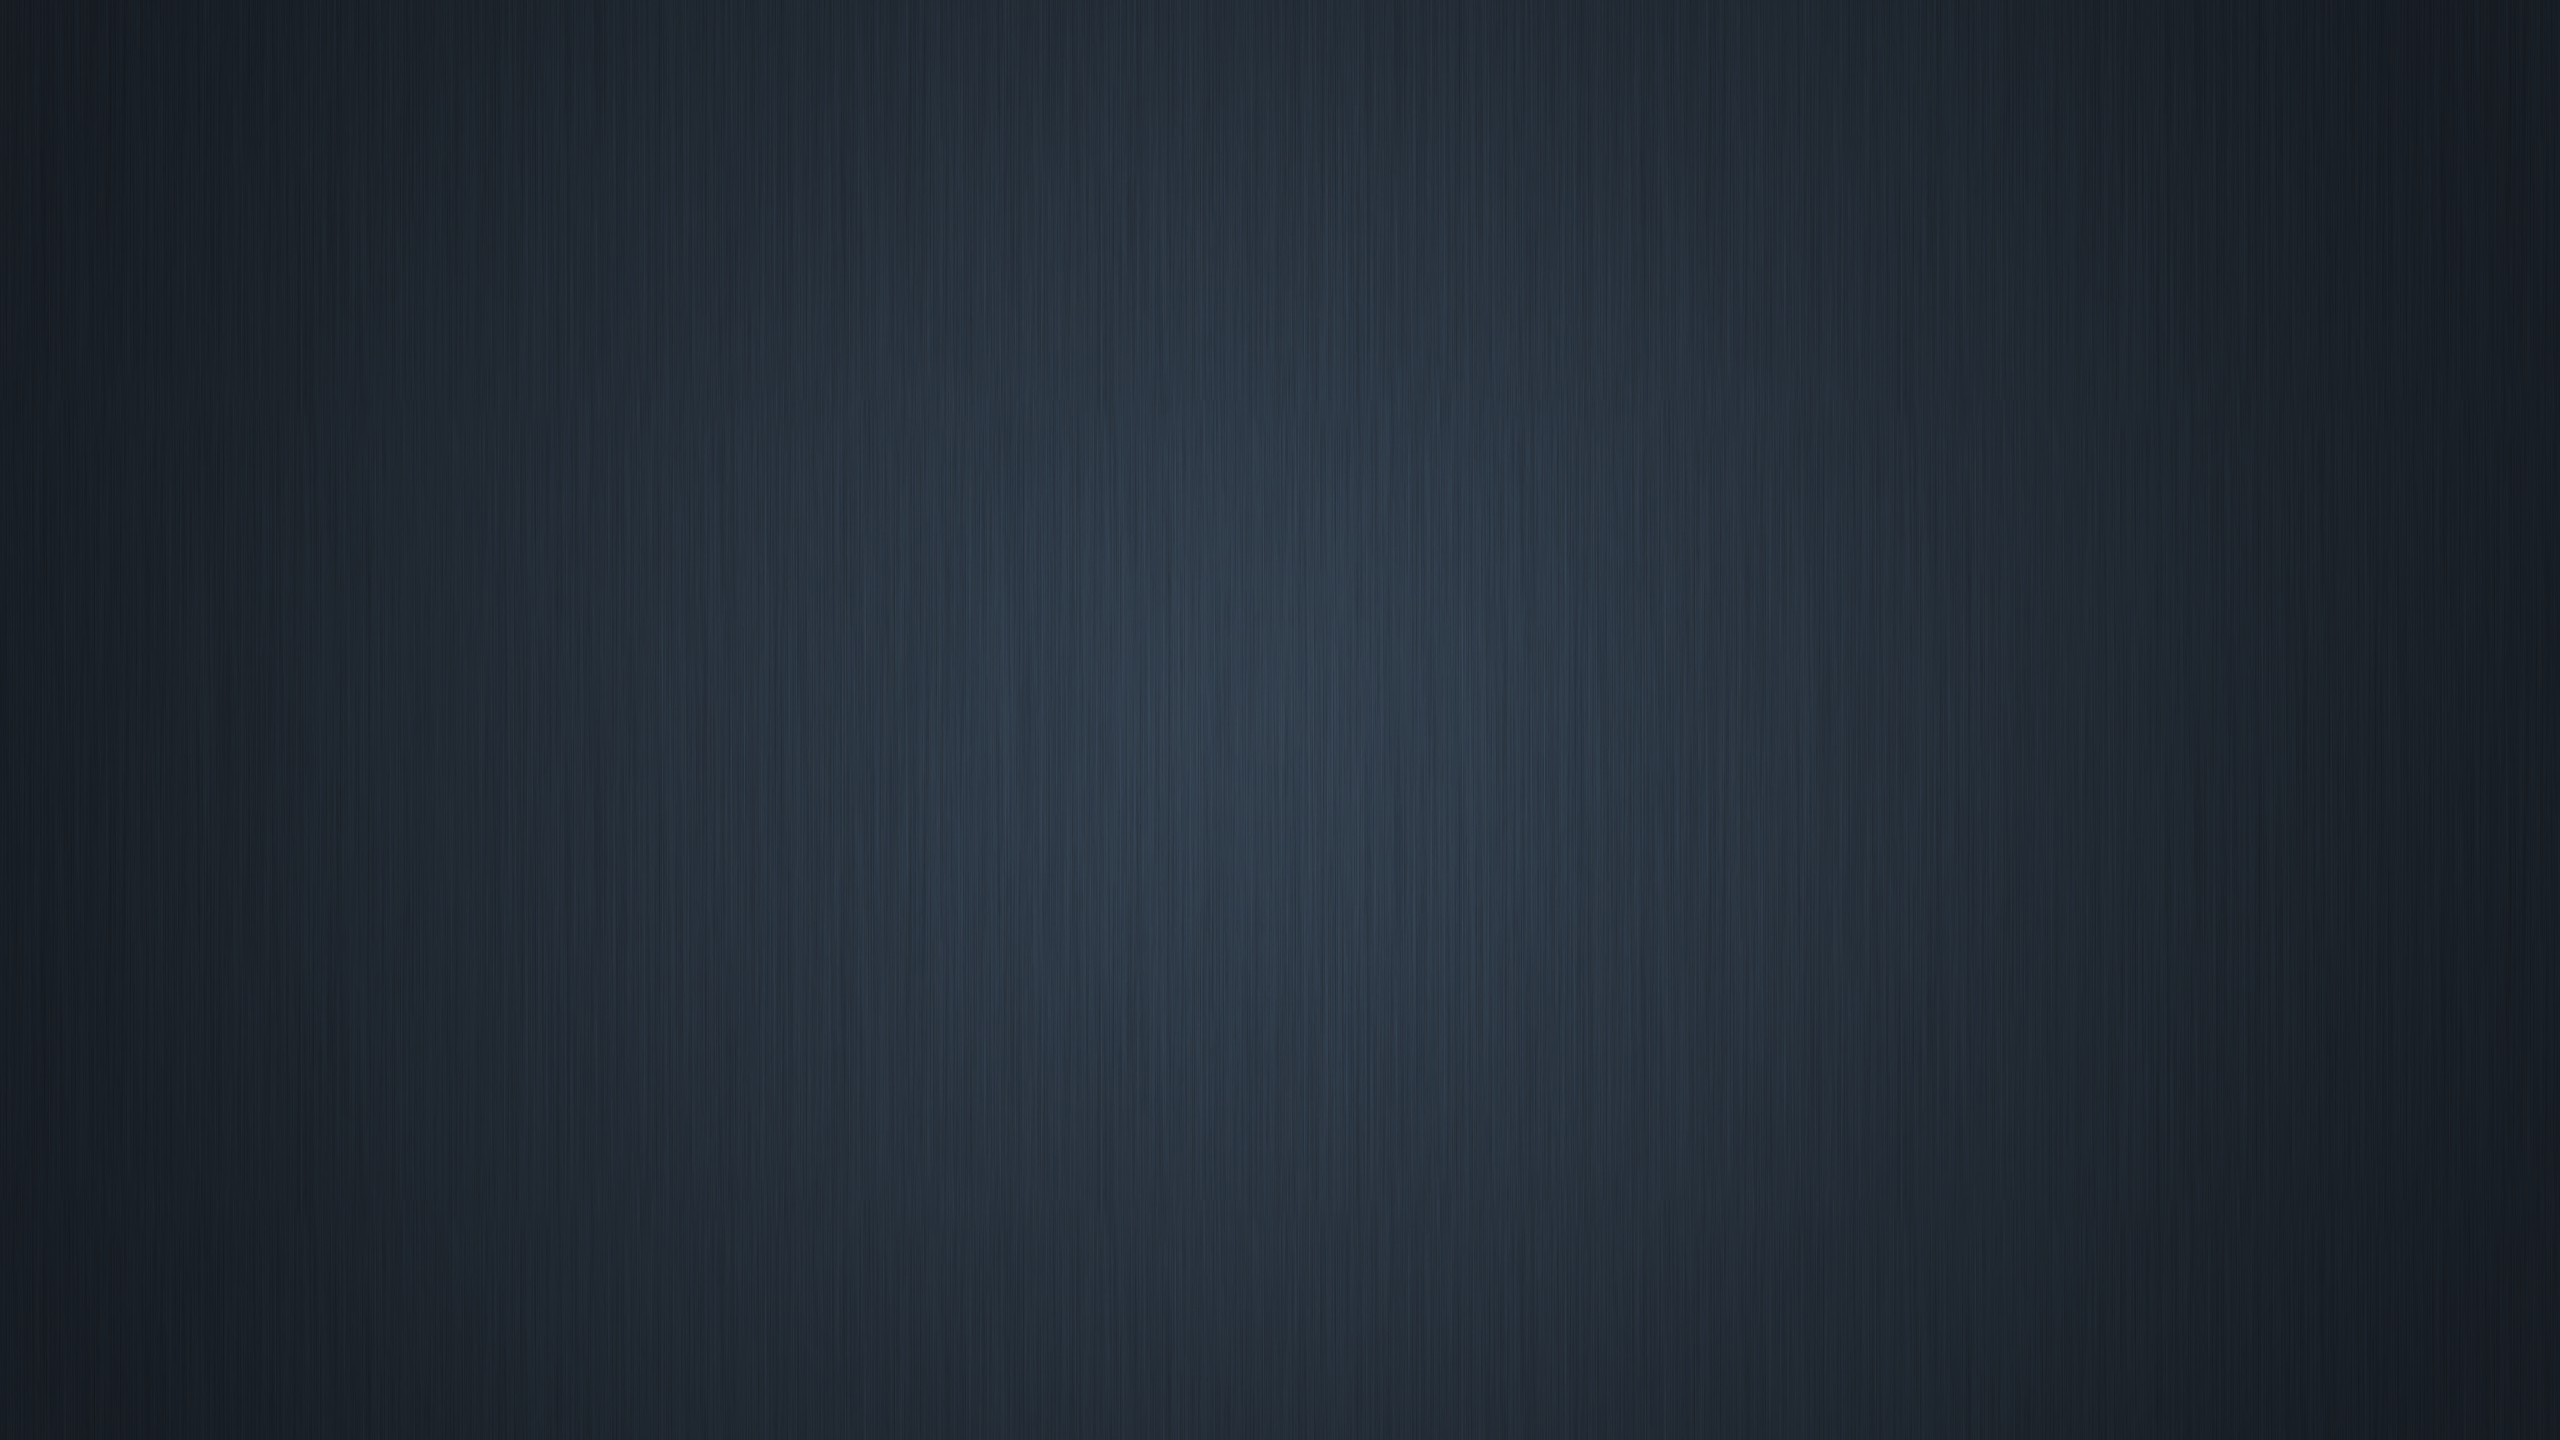 youtube banner background 2560x1440